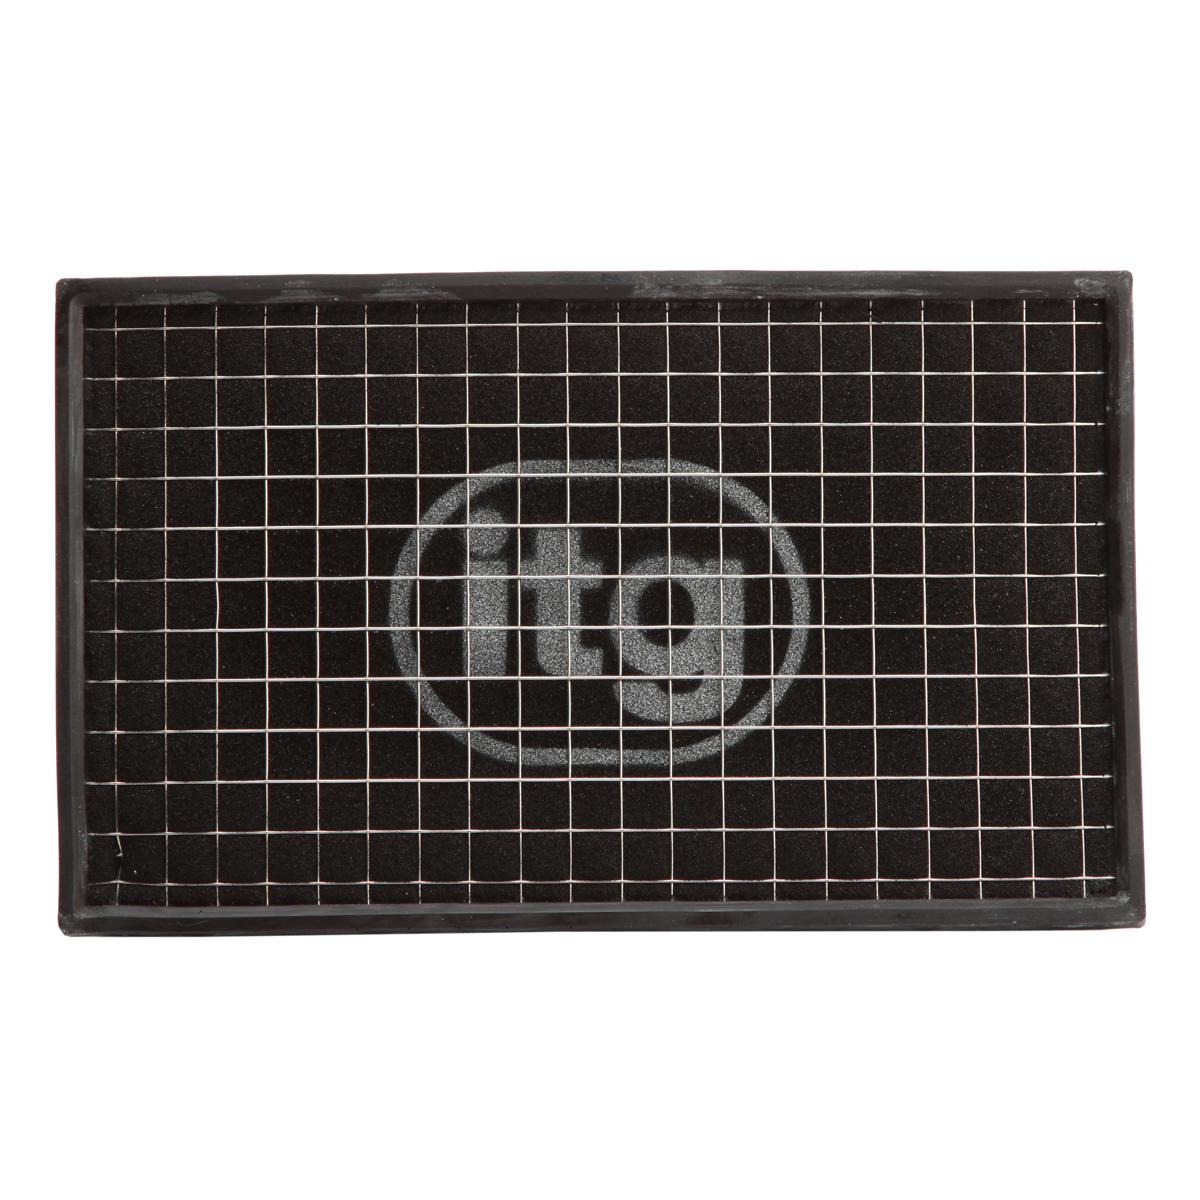 ITG Air Filter For BMW X3 (E83) 2.0i